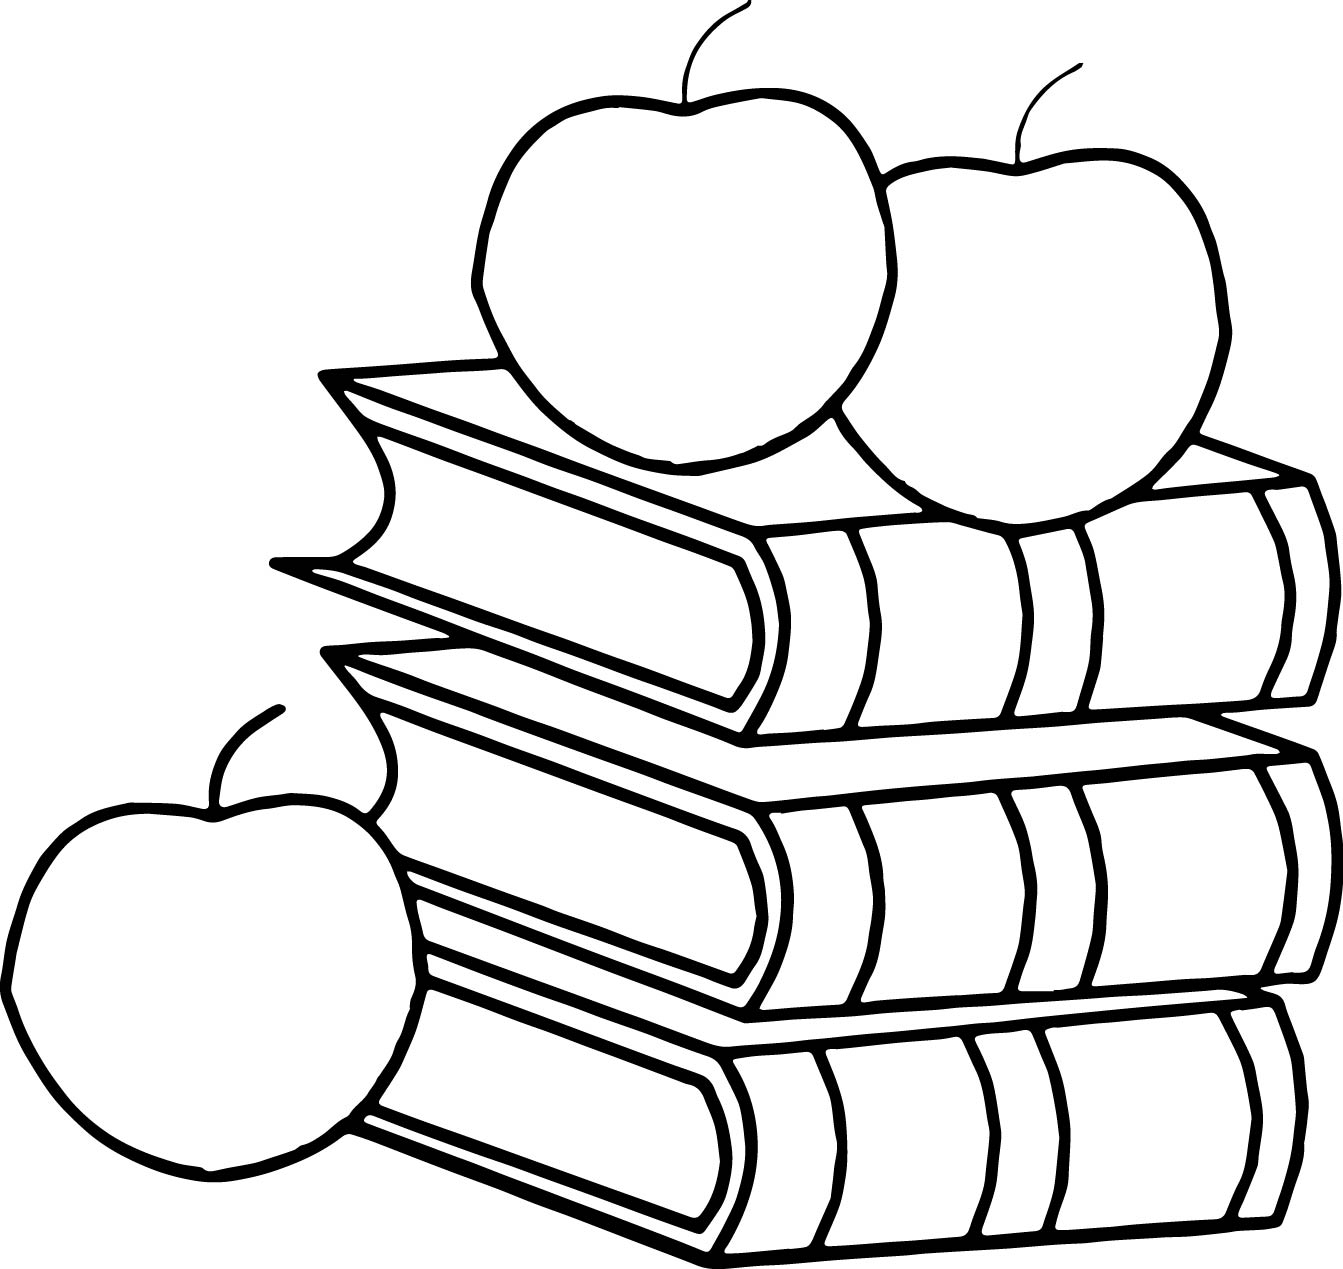 Book Apple 3rd Grade Coloring Page